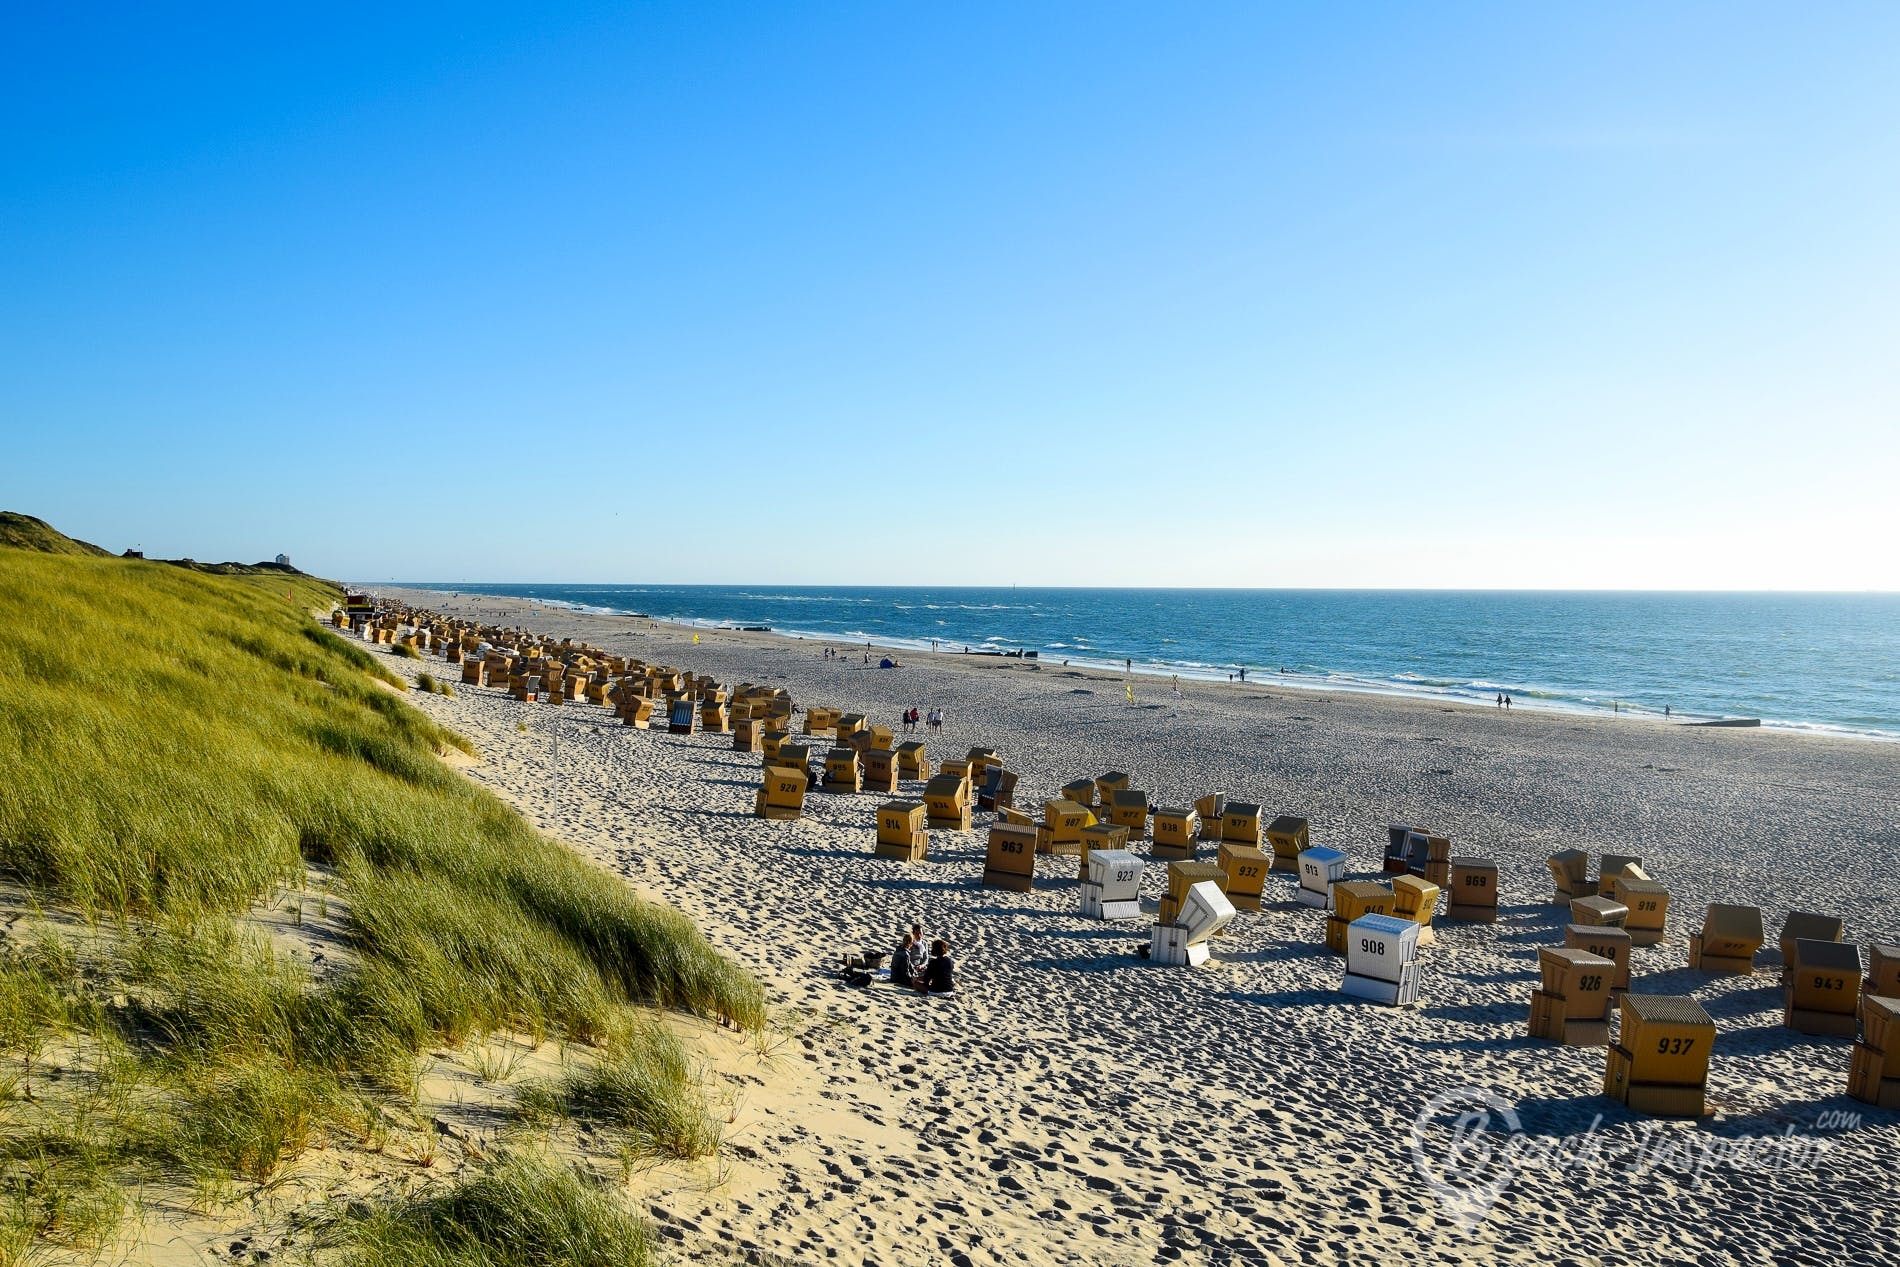 Playa Wenningstedt Hauptstrand, Sylt, Alemania